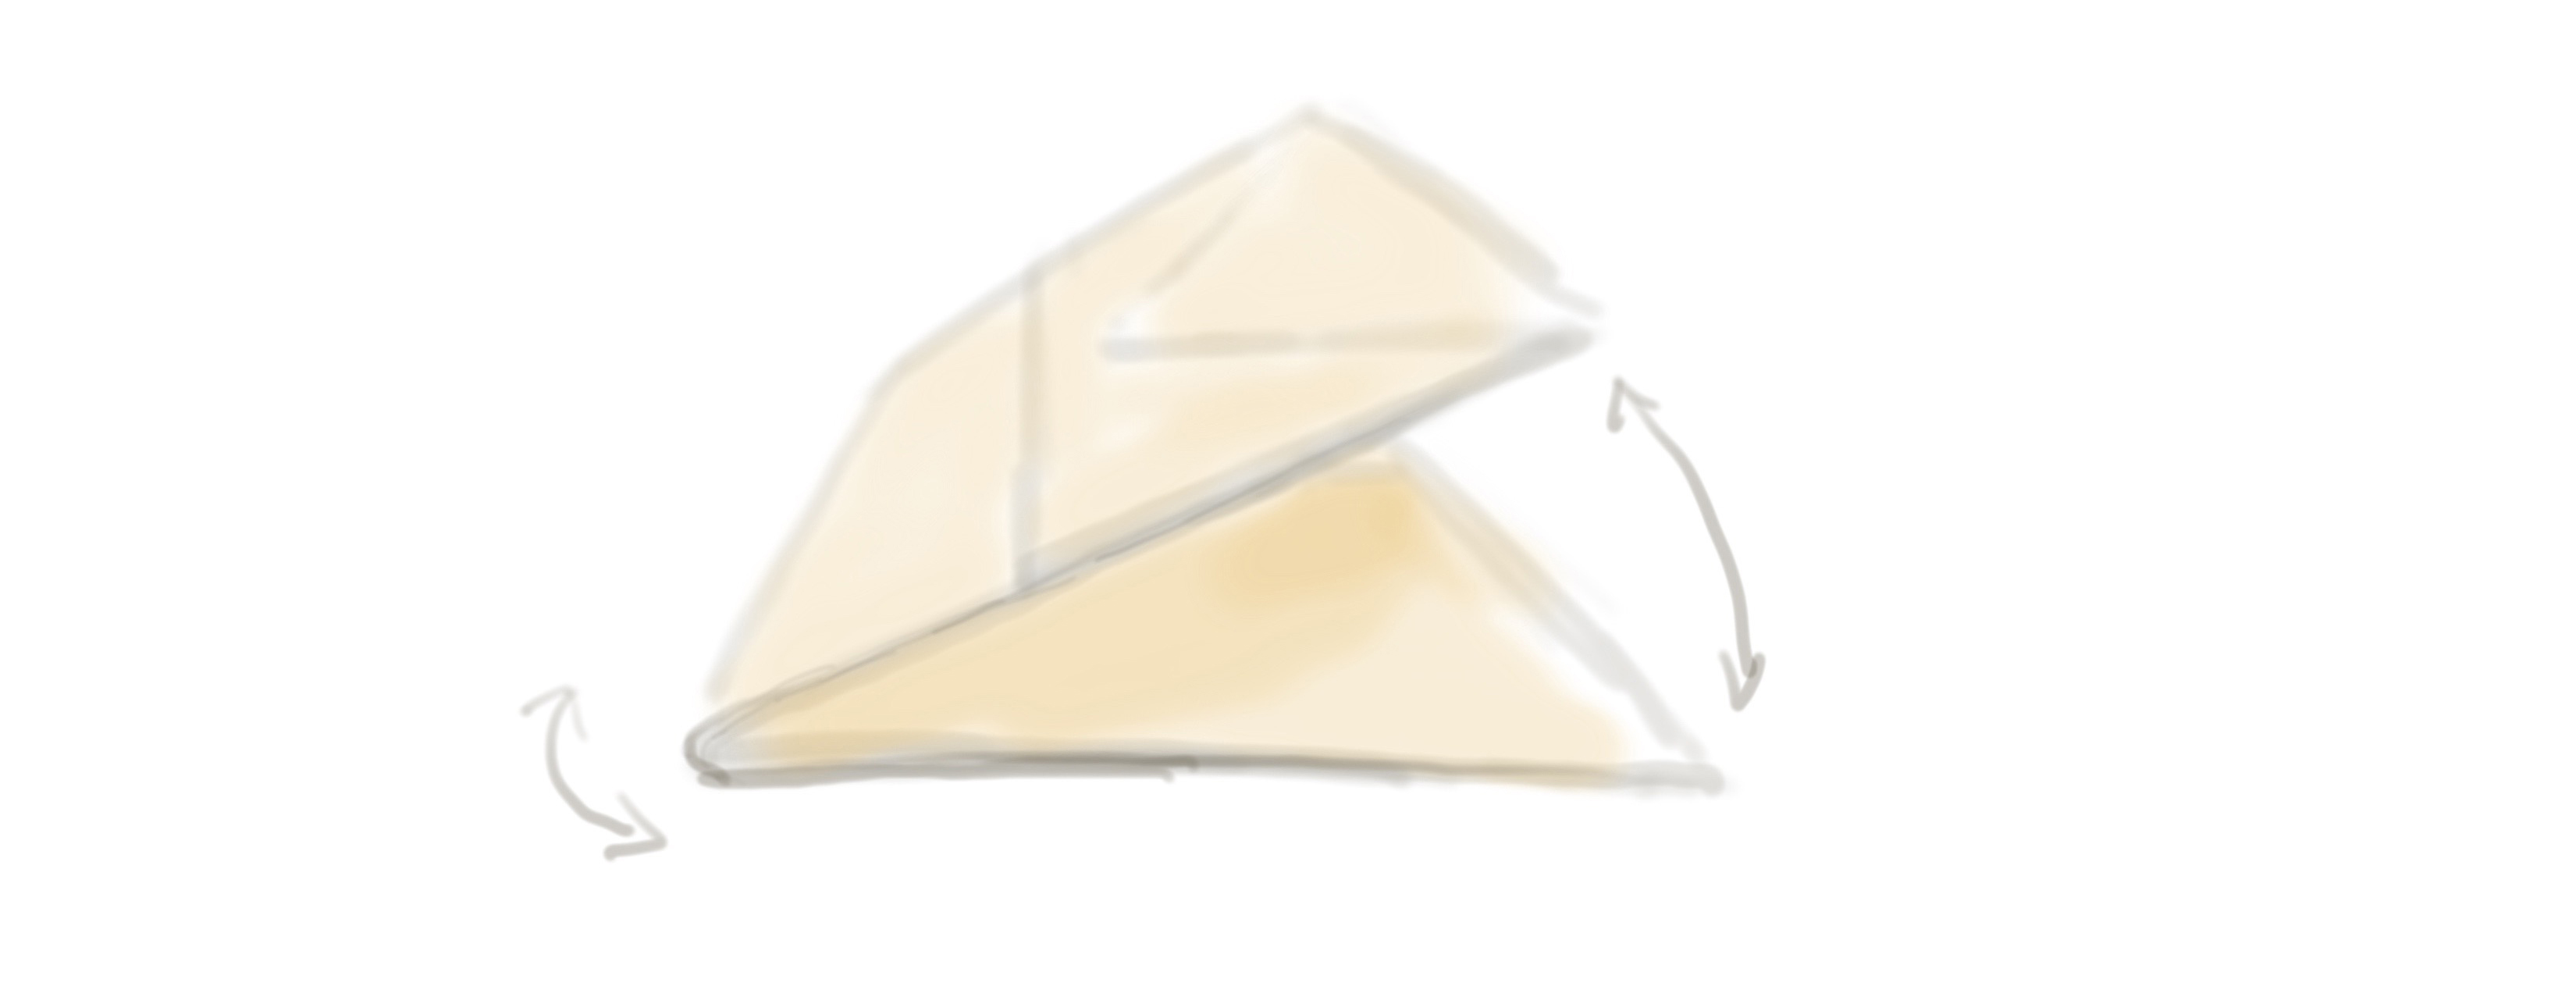 drawing of folding the bag in half